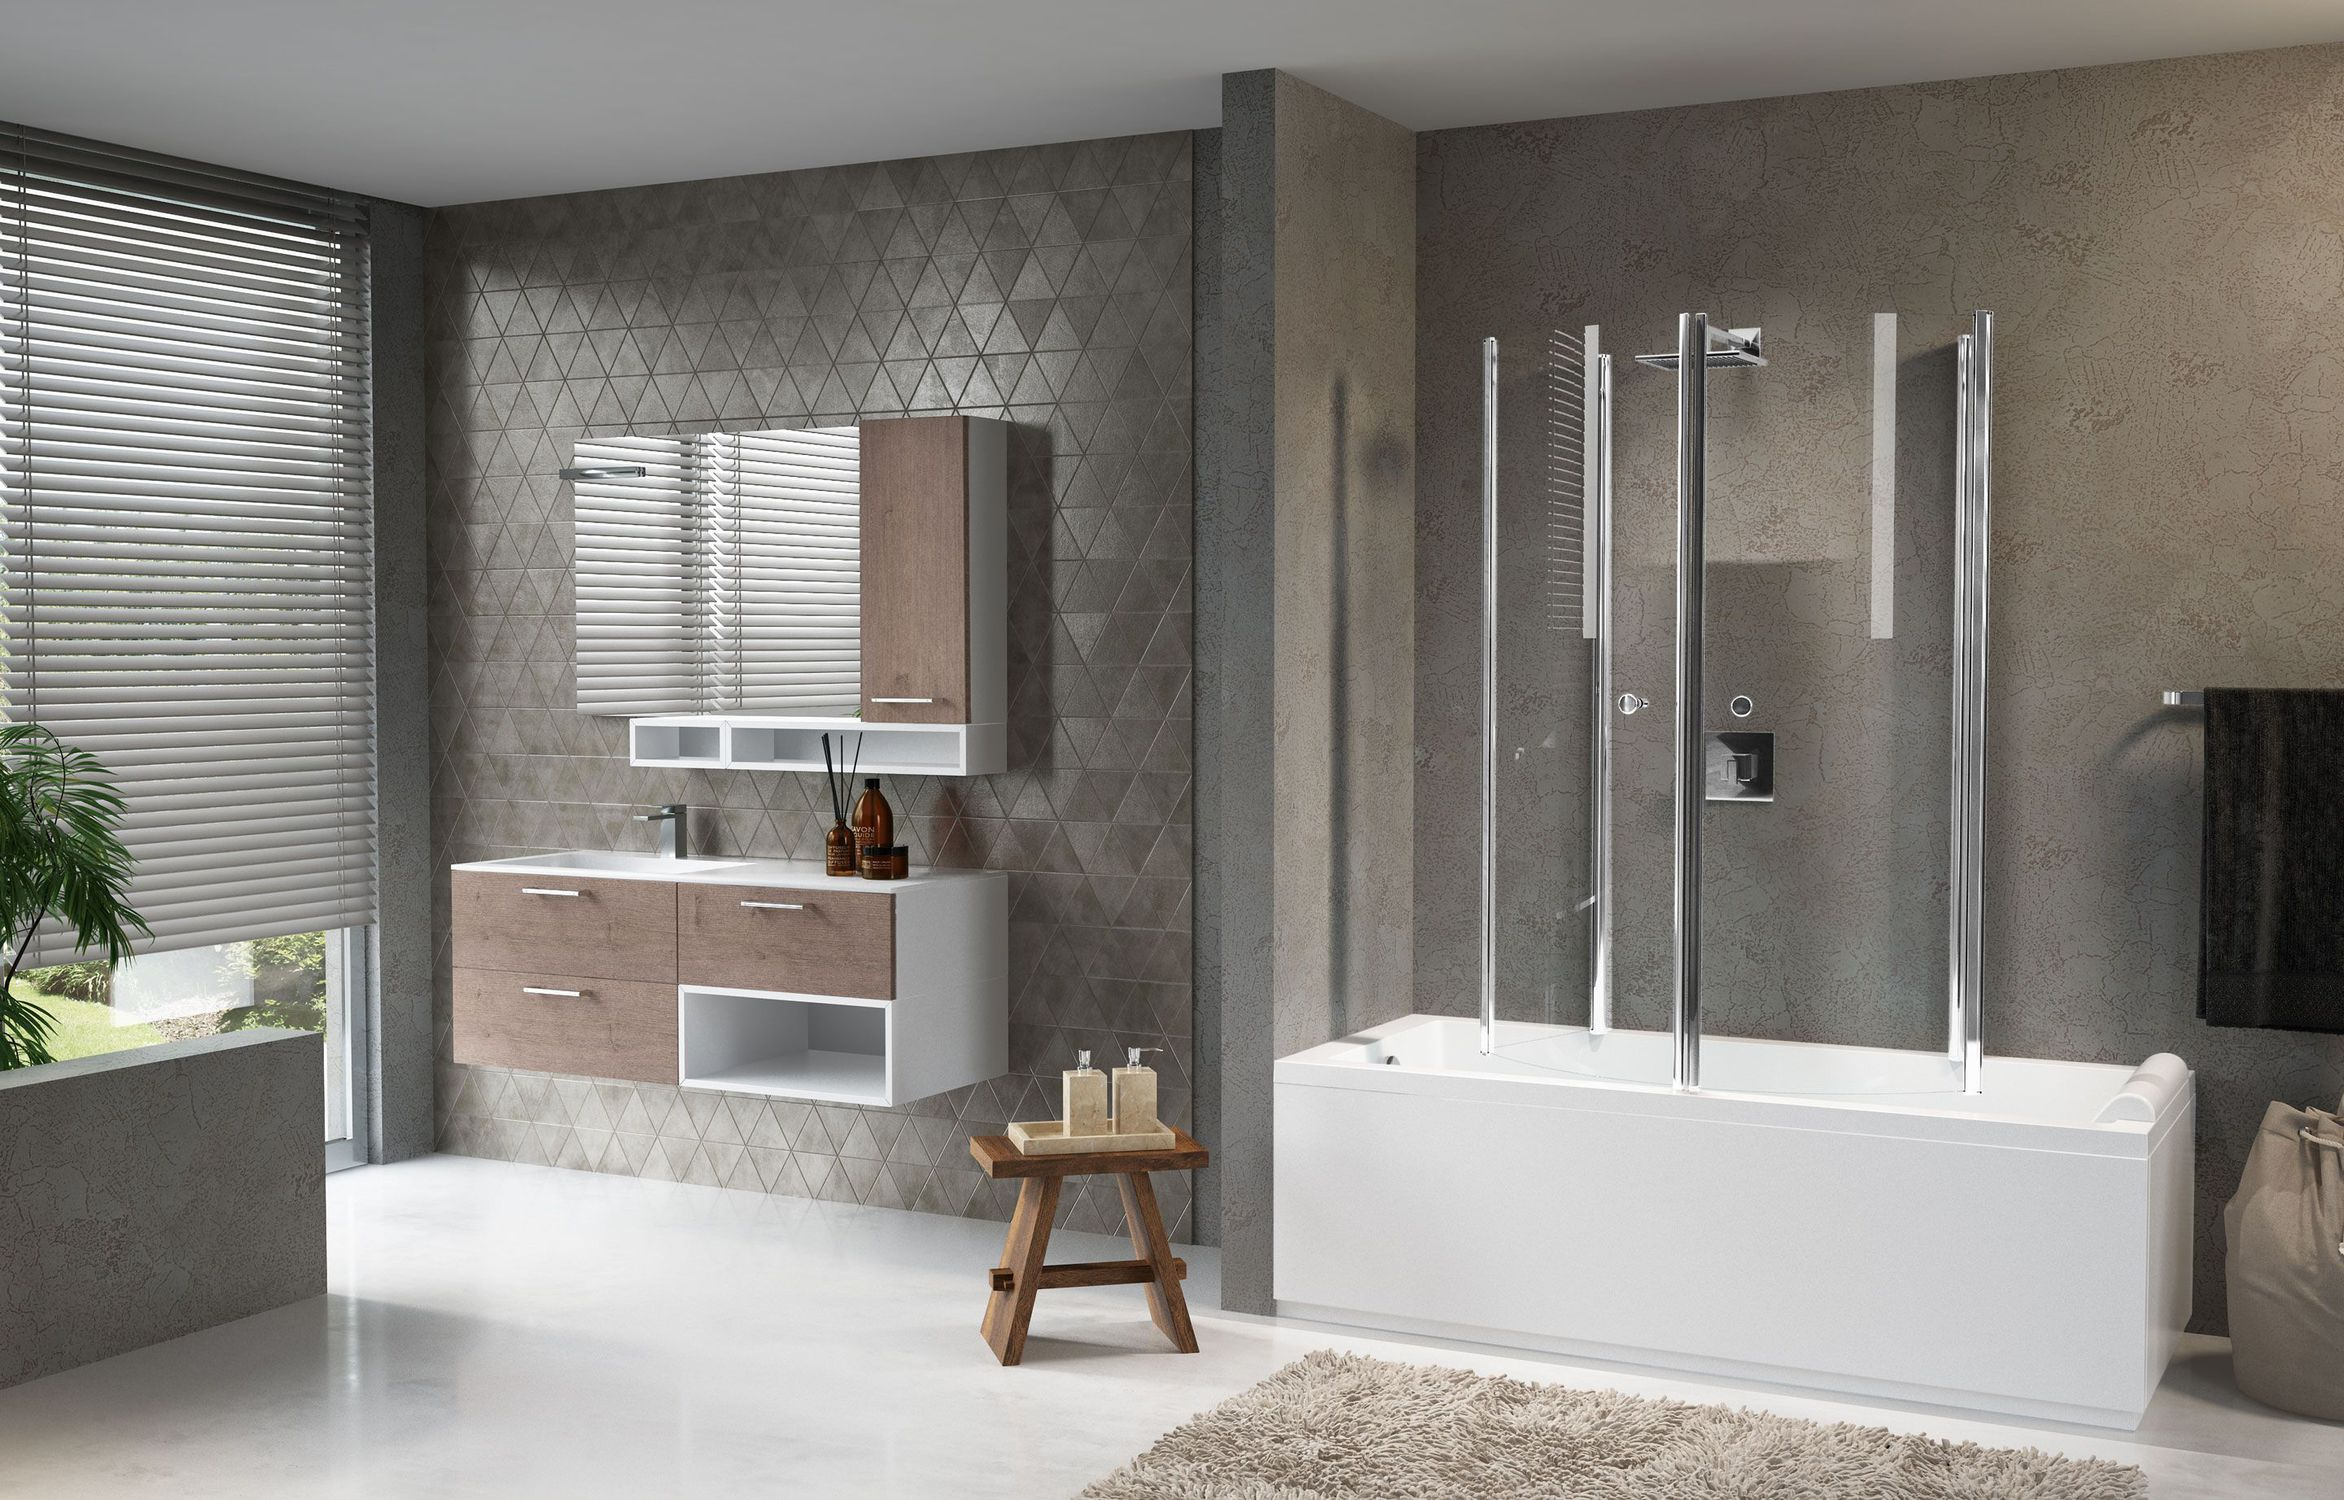 Aurora 4 Novellini.Folding Bath Screen Tempered Glass Aurora 4 Novellini